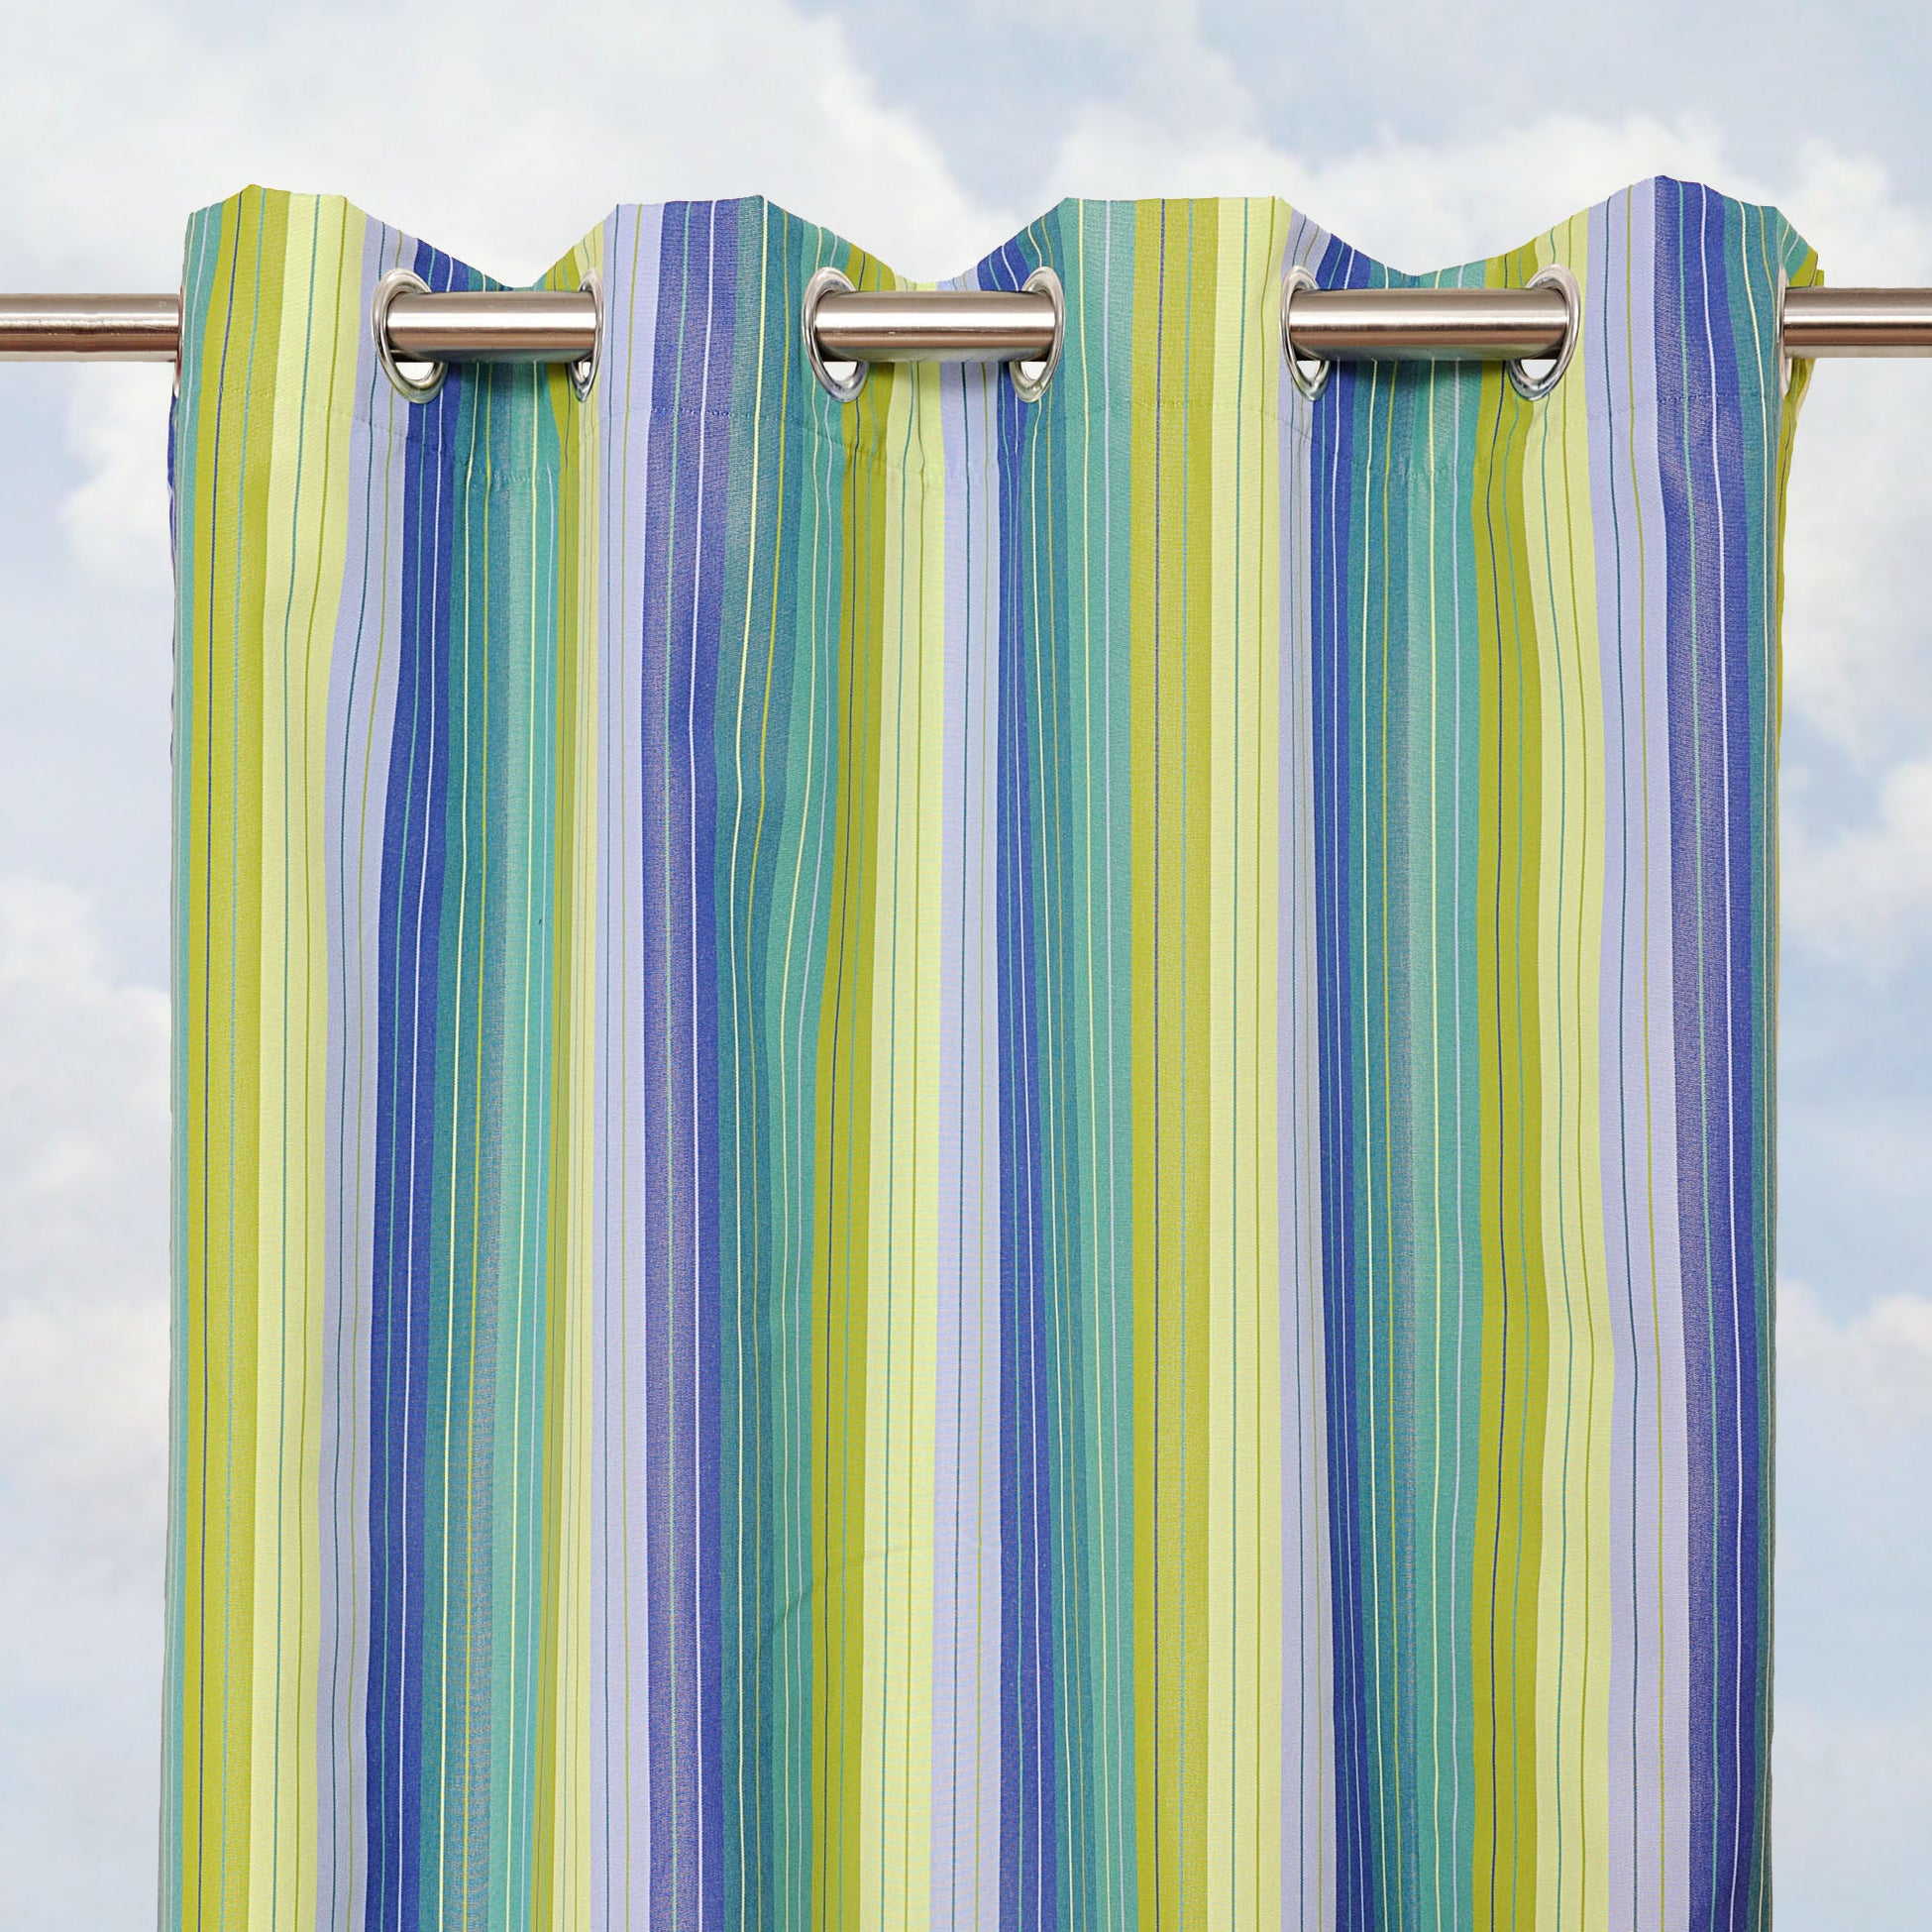 Sunbrella Bay View Seaside 84-inch Outdoor Curtain Panel - Thumbnail 0